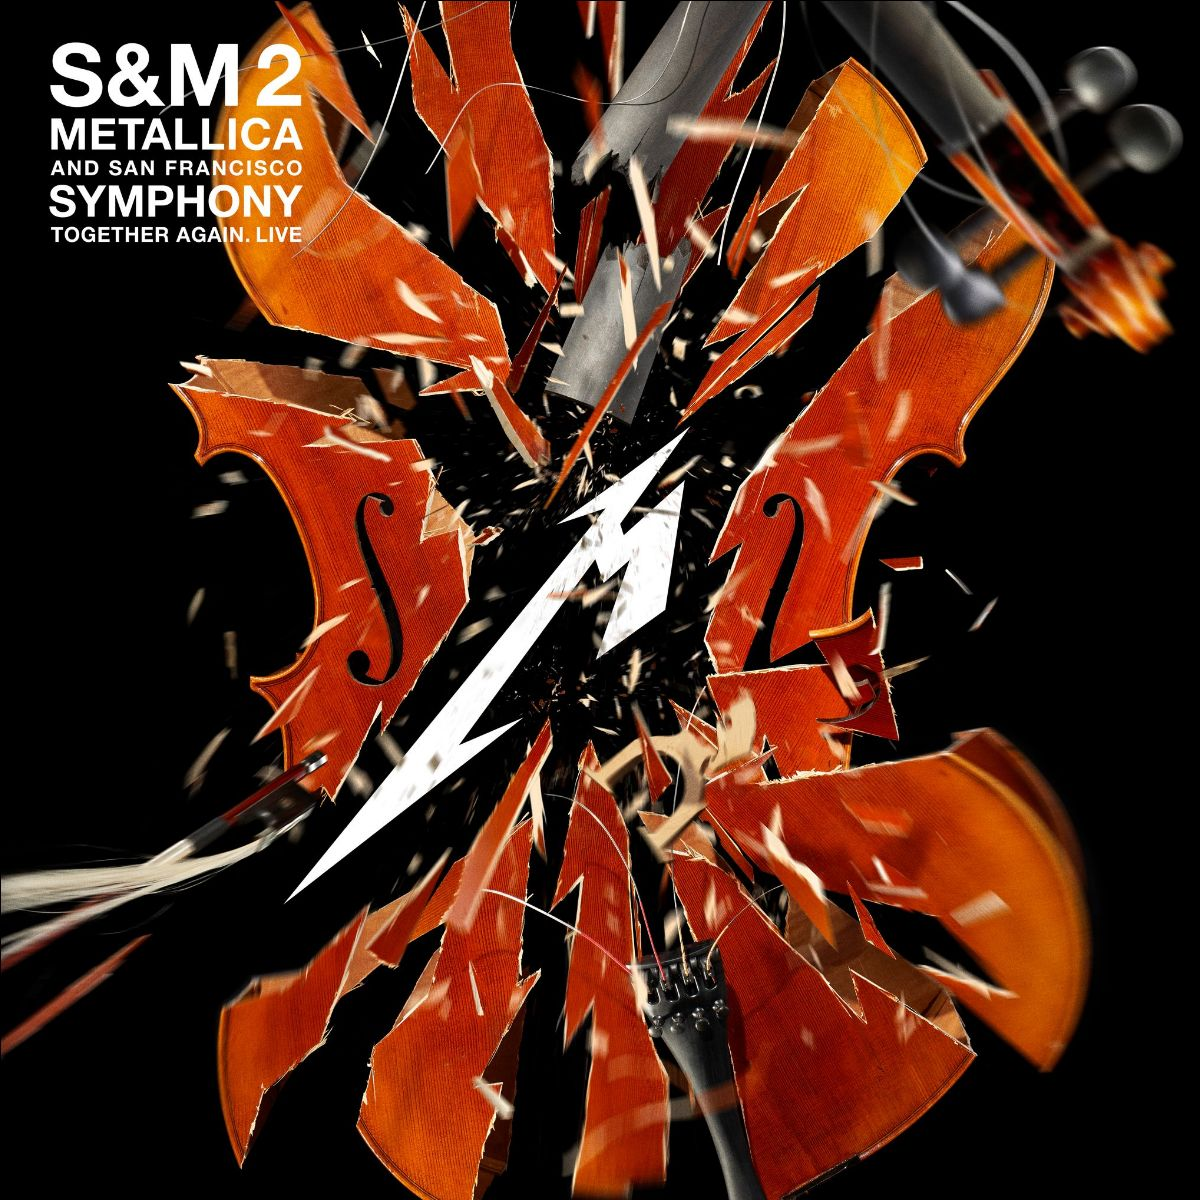 Metallica & San Francisco Symphony: S&M2 Live Album and Video Documenting September 6 & 8 Shows at San Francisco's Chase Centre